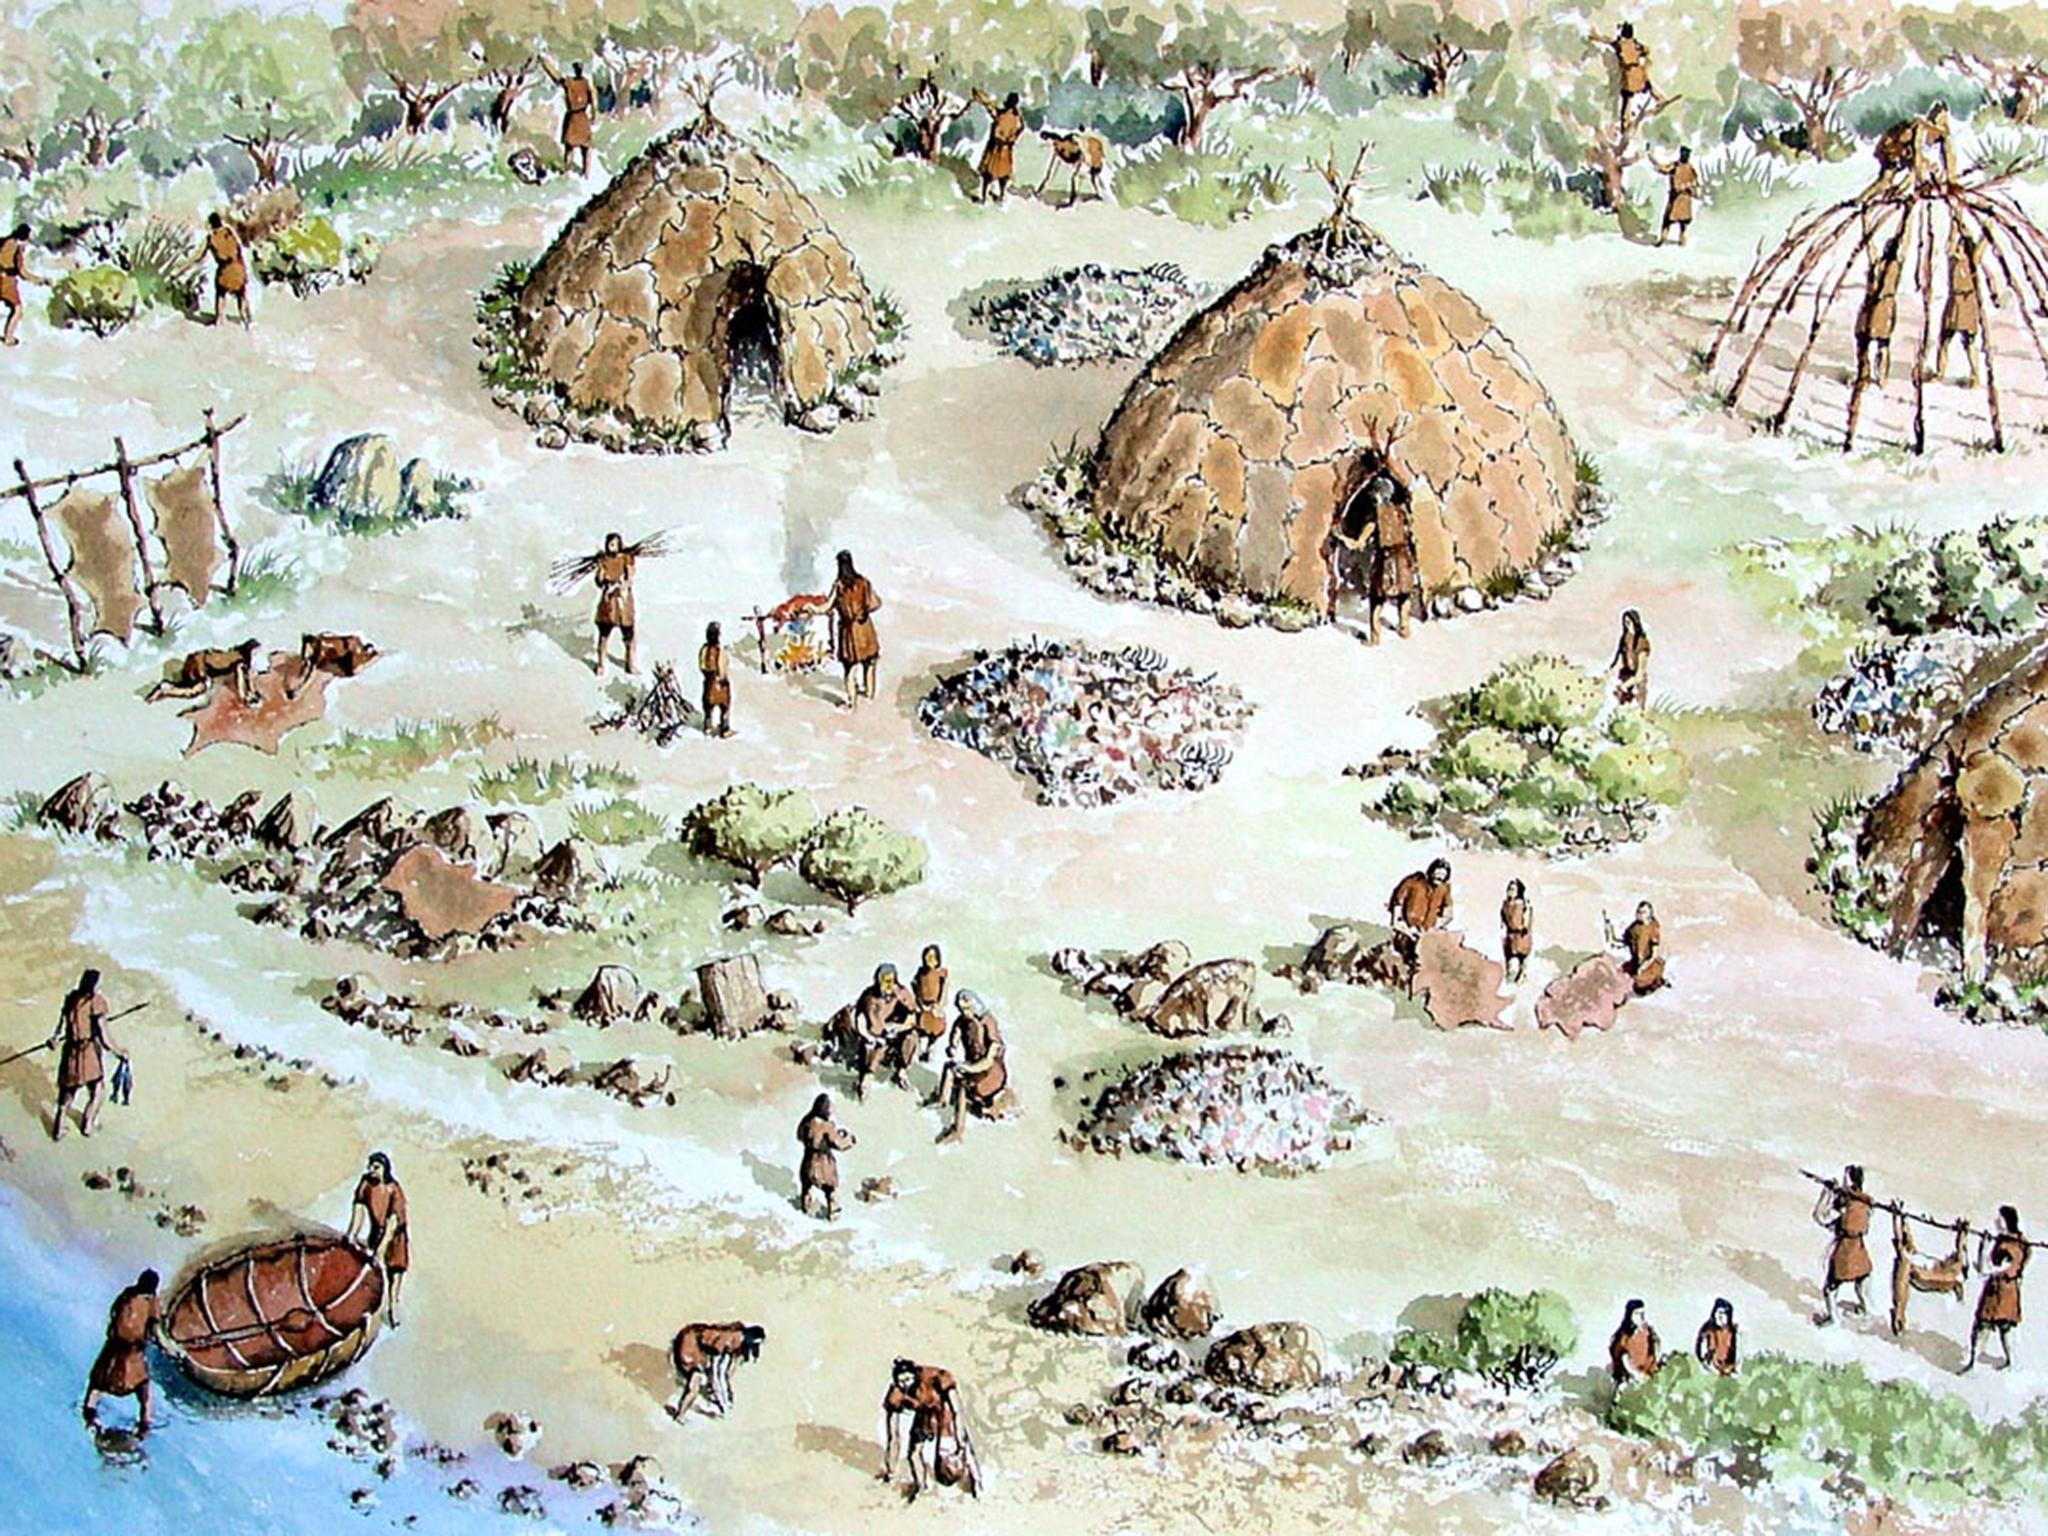 stone age - latest news, breaking stories and comment - The ...